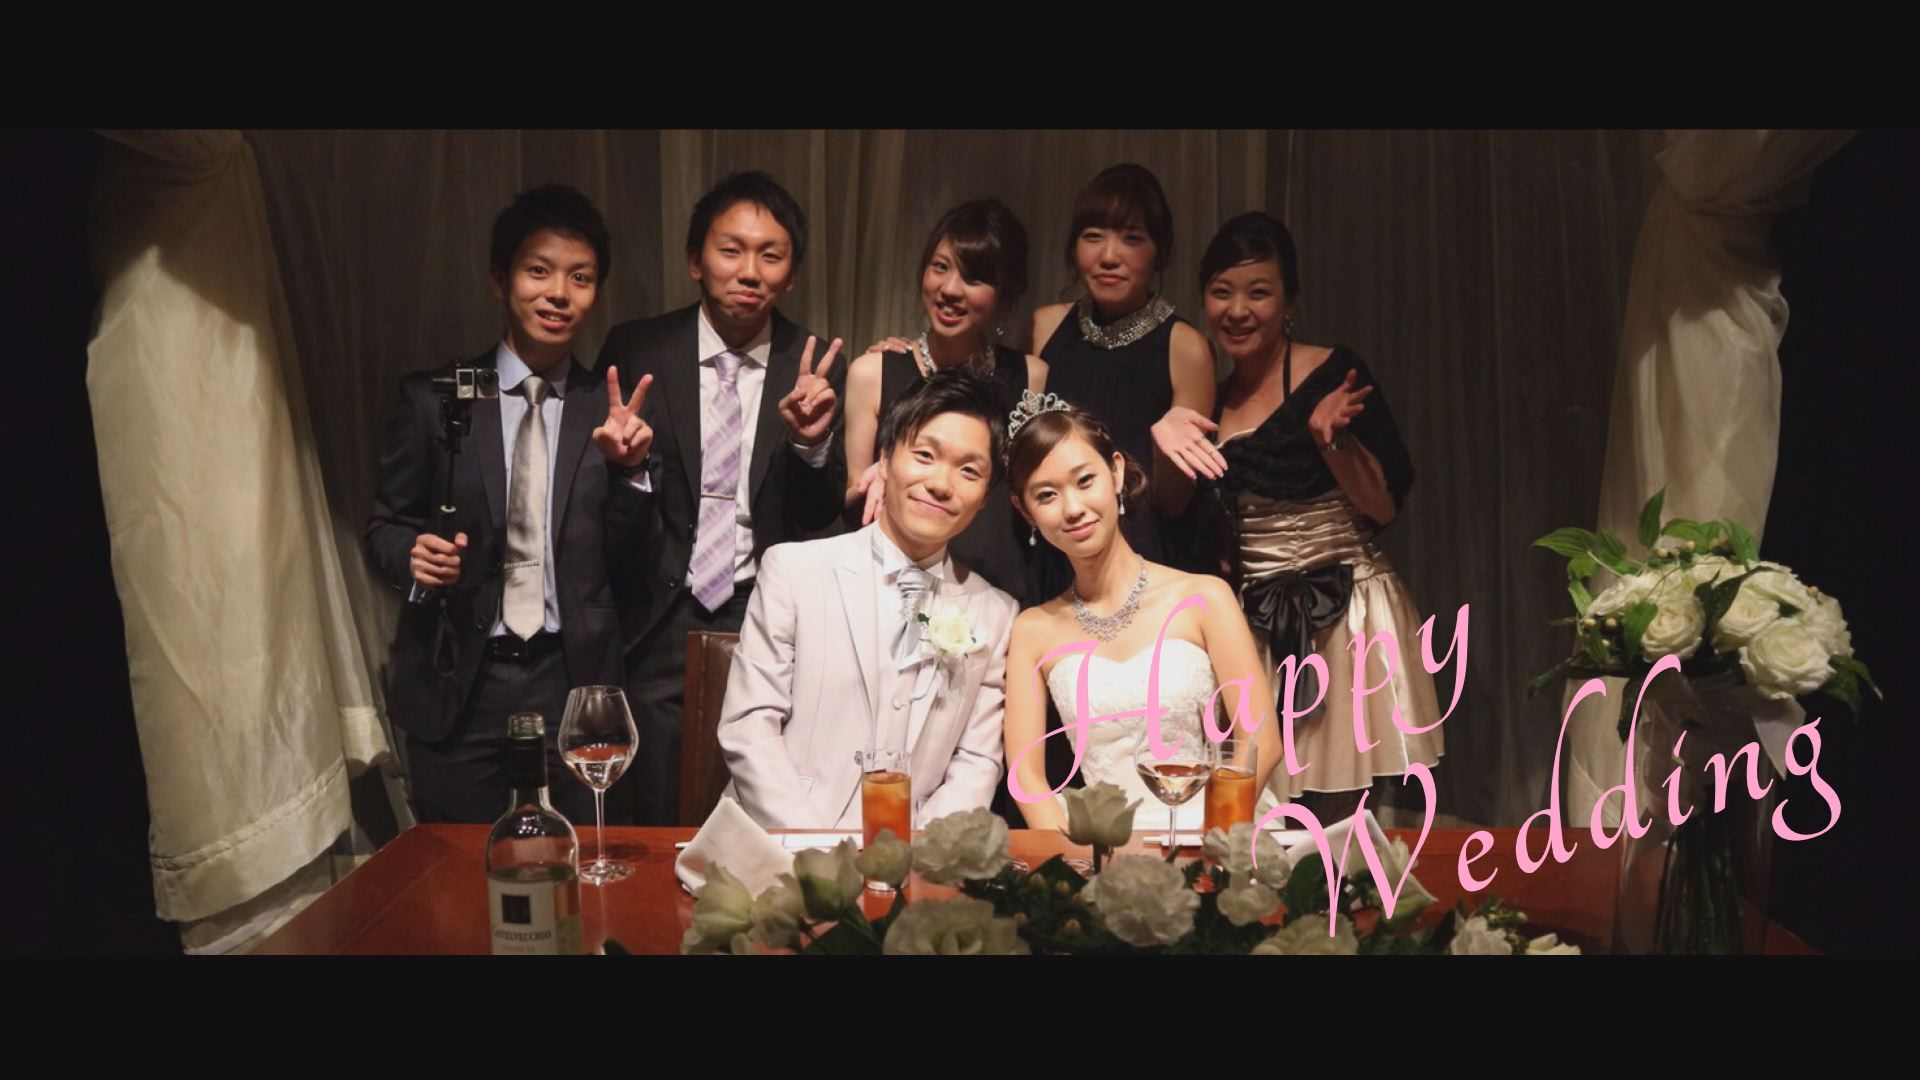 Miki+Sangwook Wedding Party